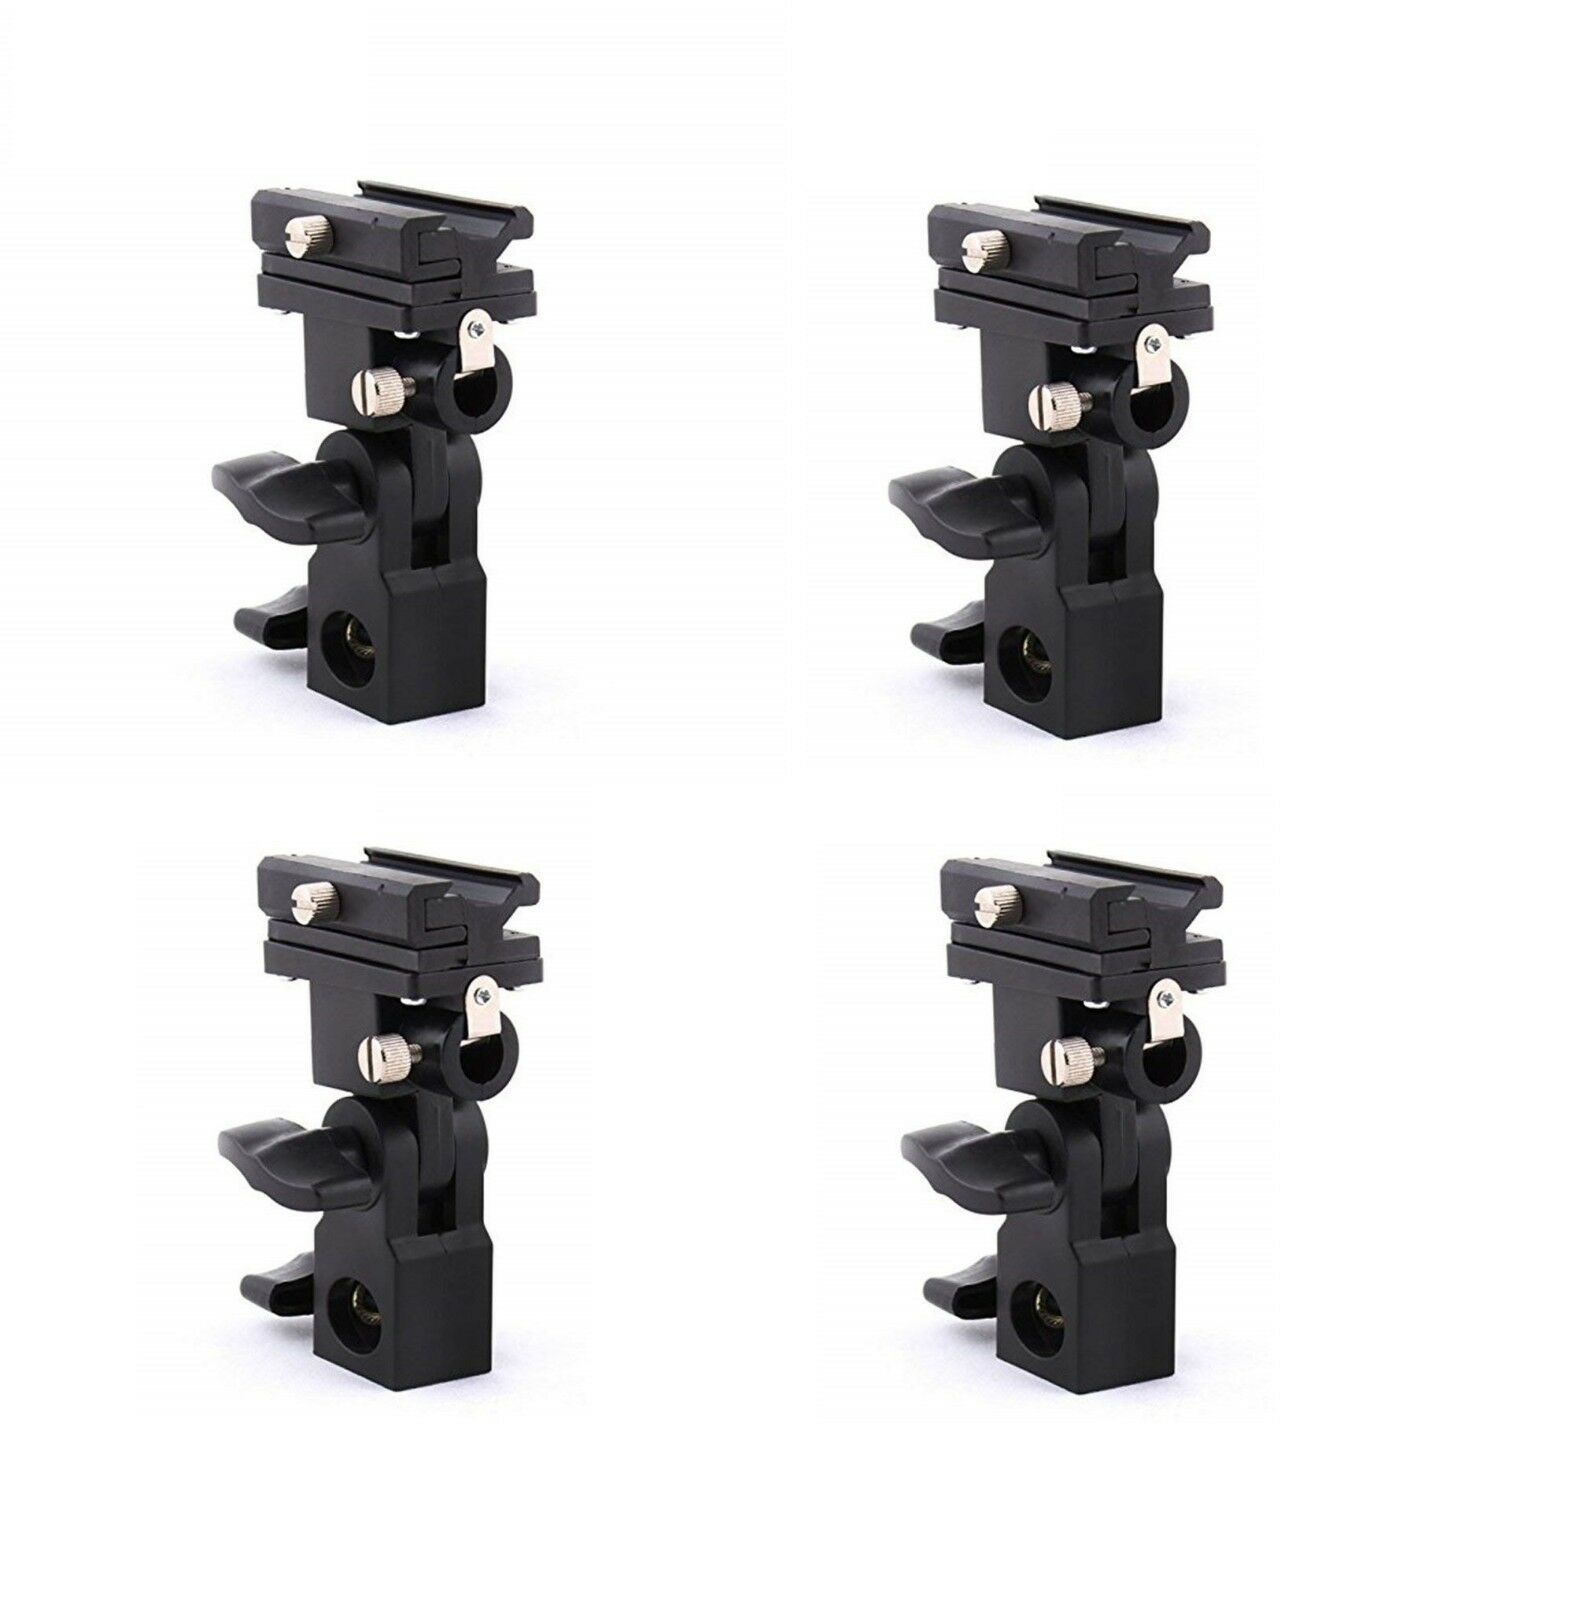 LOT OF 4 PCS Generic Flash Bracket Swivel Umbrella Holder St